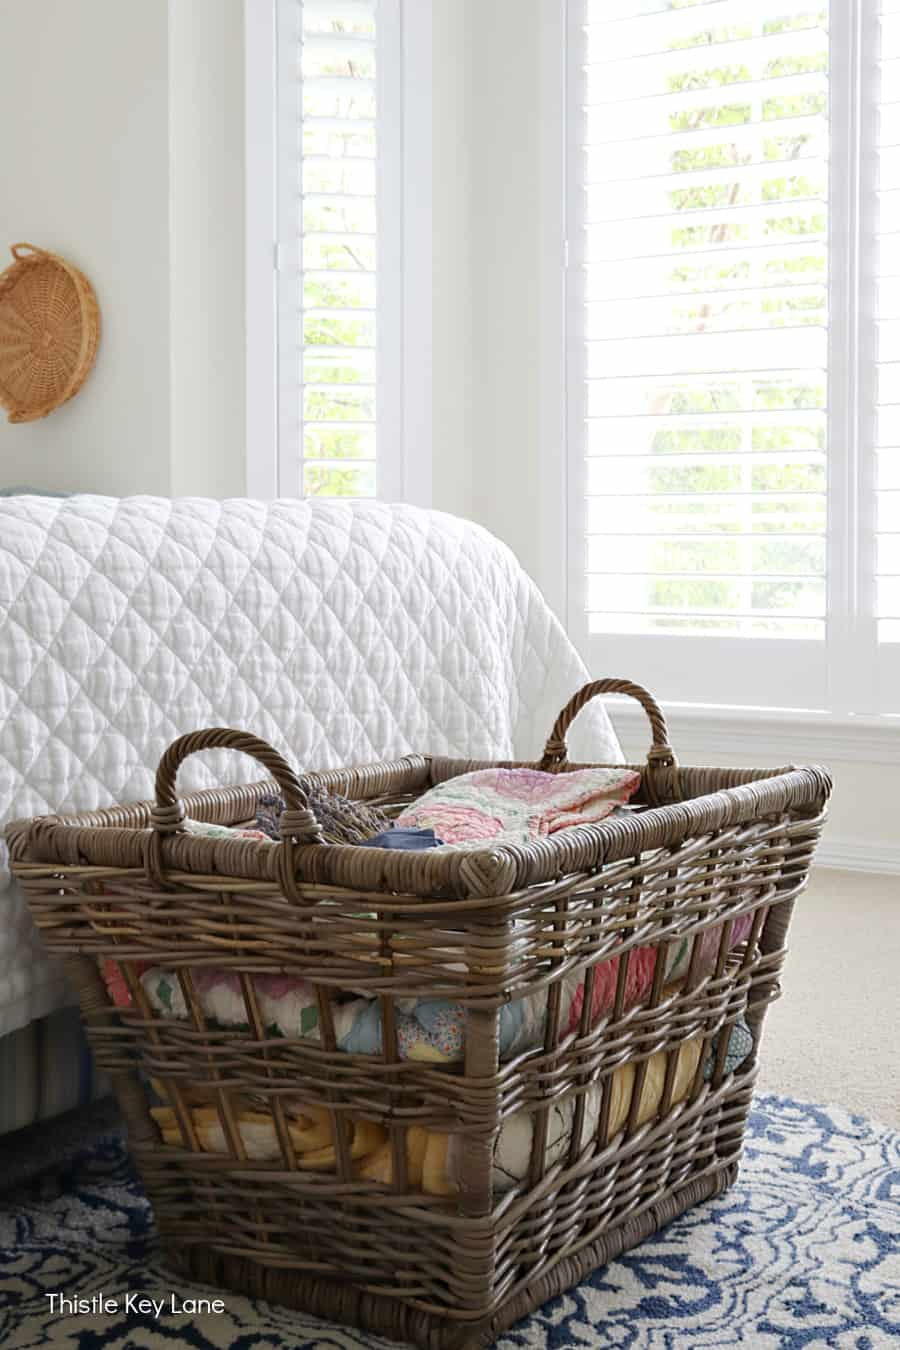 Basket at the foot of the bed with white quilt and big windows. Summer Bedroom Updates And A Quilt Basket.